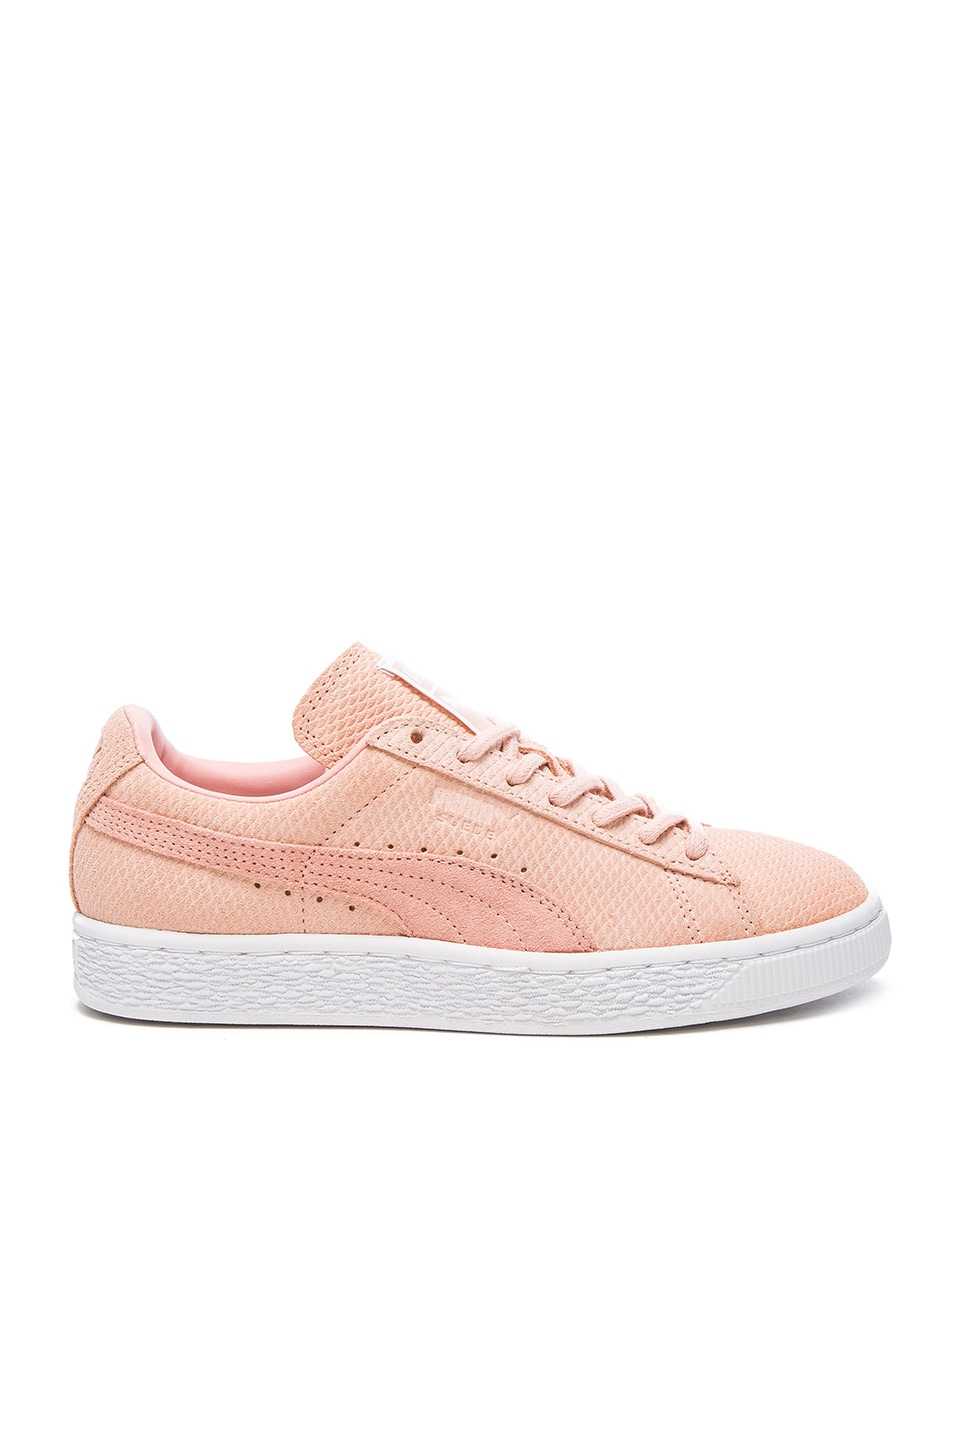 Puma Sportstyle Suede Classic Sneaker in Coral Cloud Pink